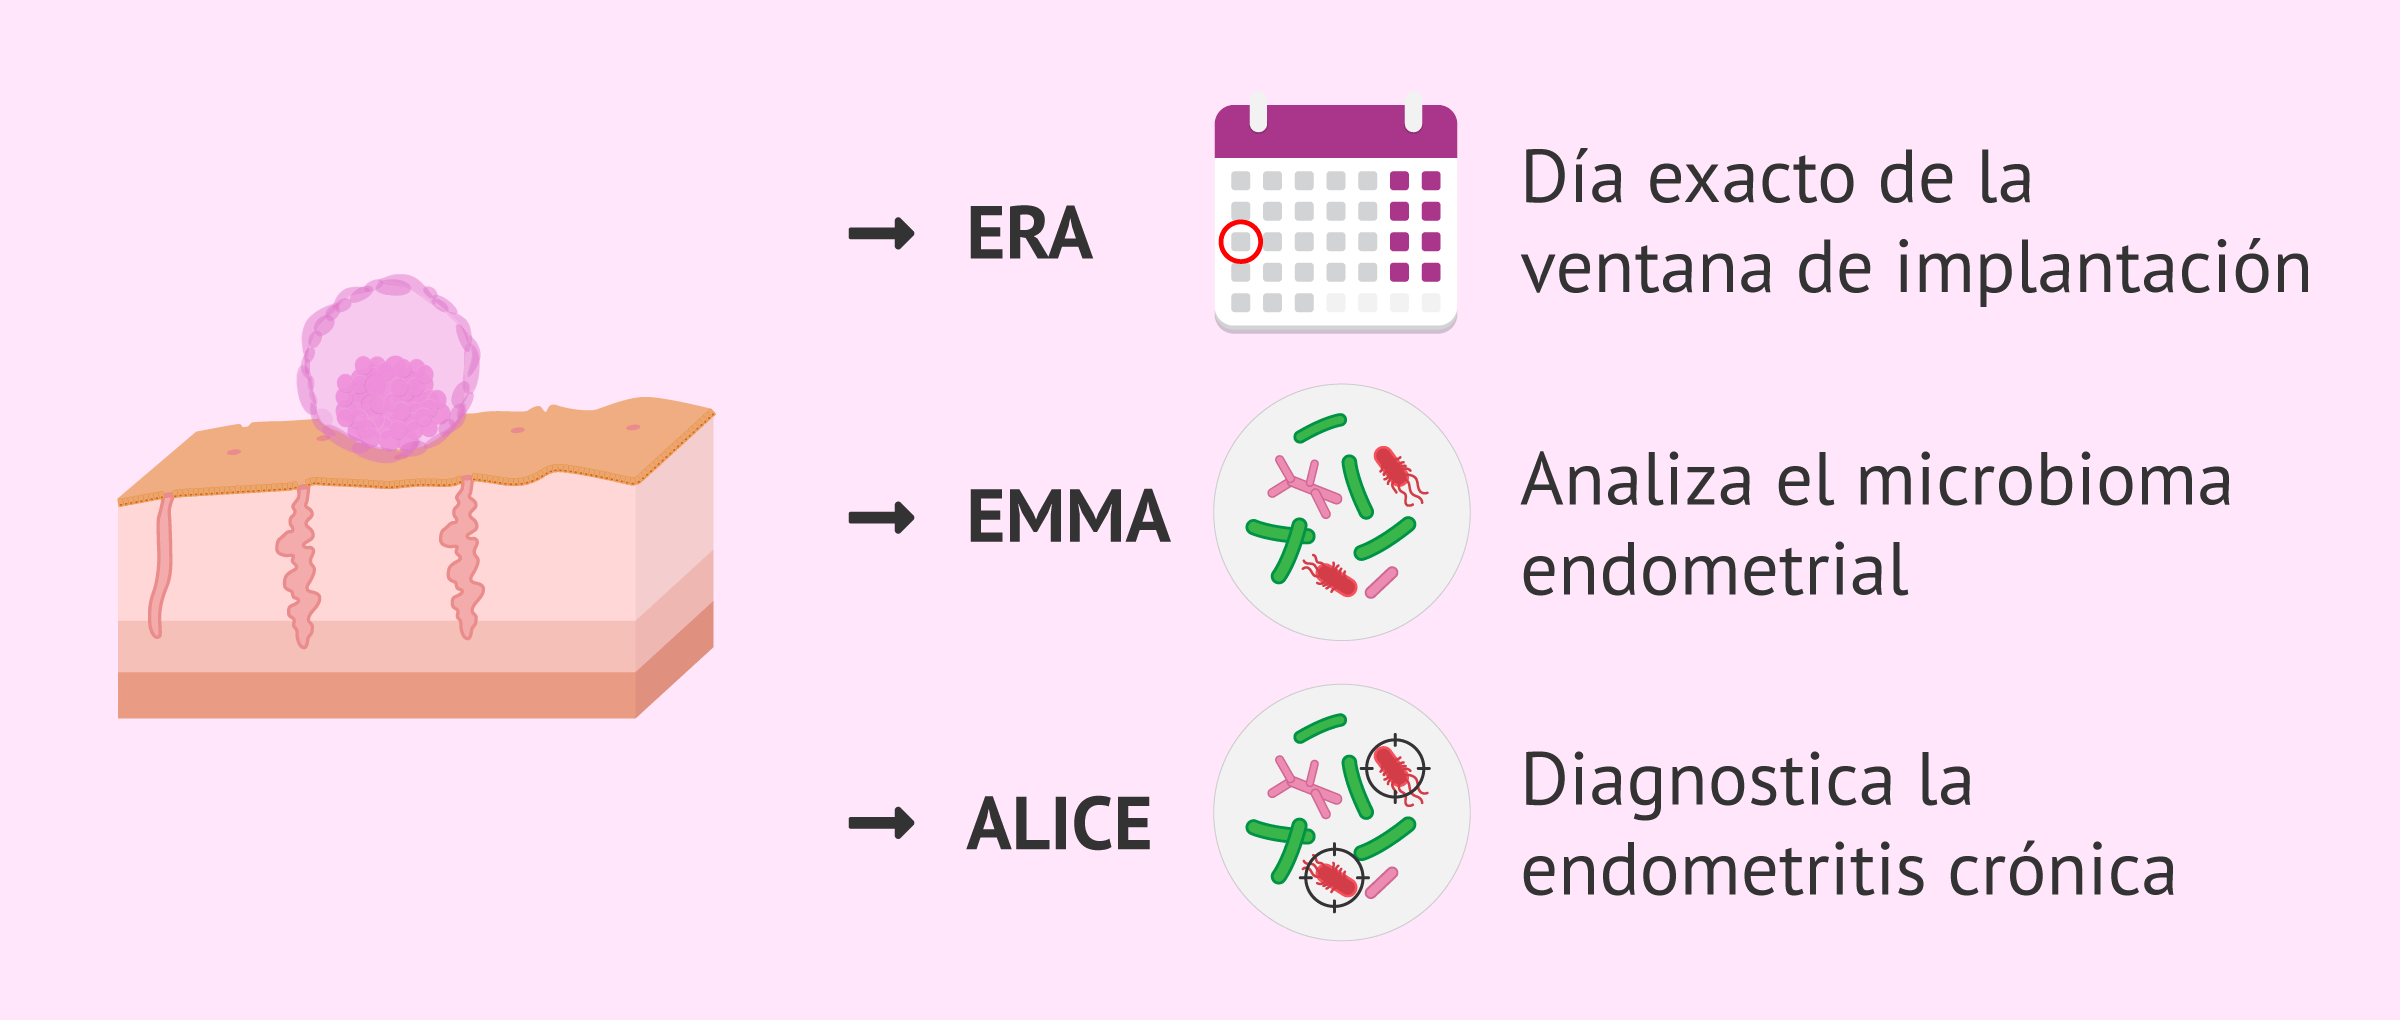 Test EndomeTRIO: ERA, EMMA y ALICE